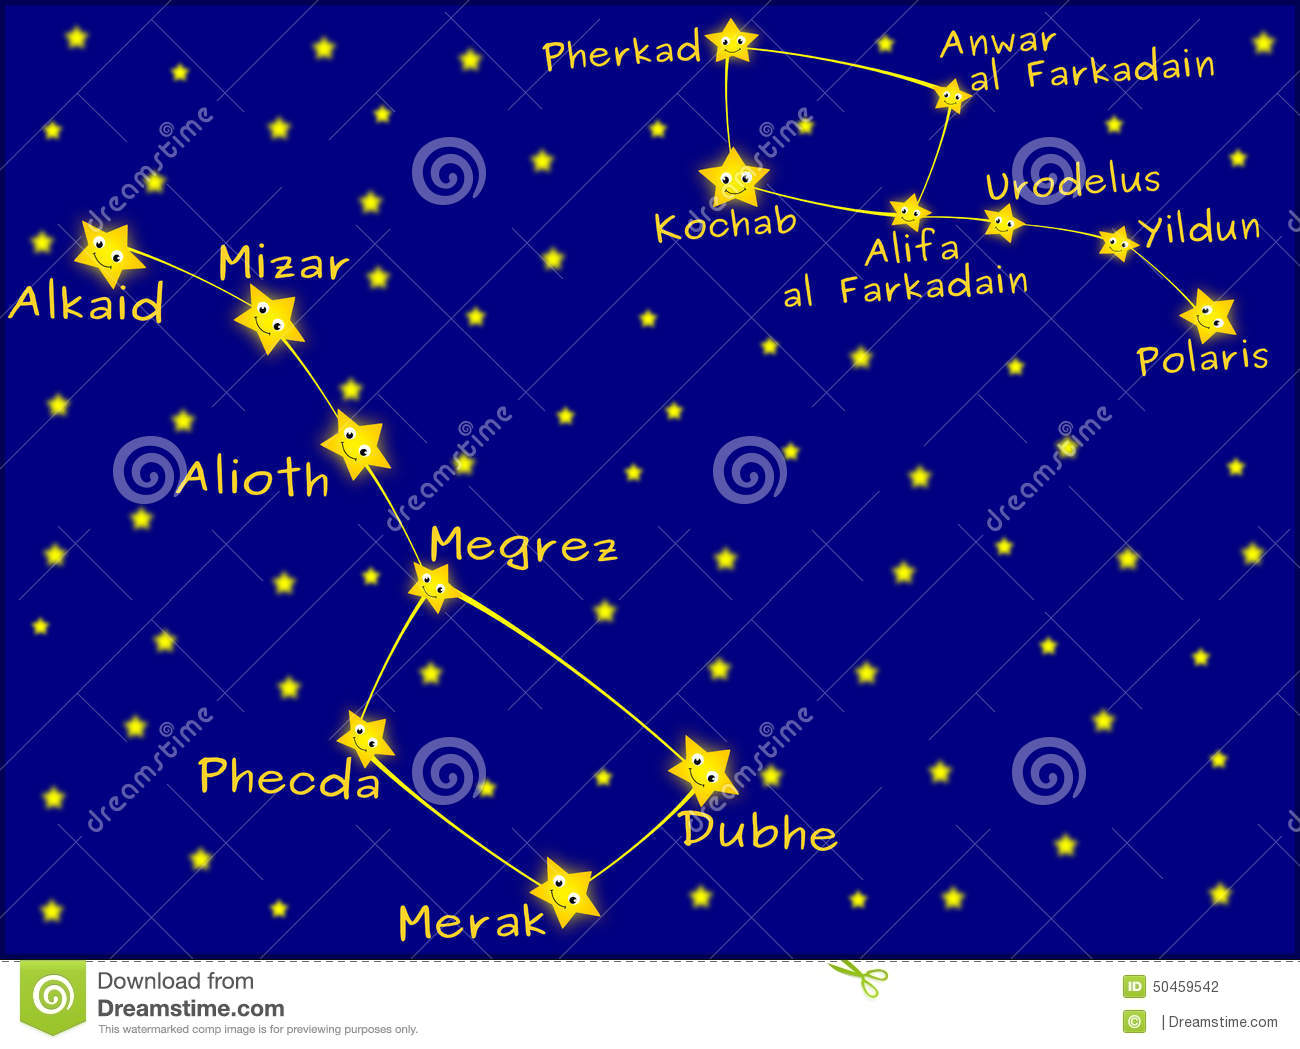 Constellations Ursa Major And Minor Ursa Major and Ursa Minor